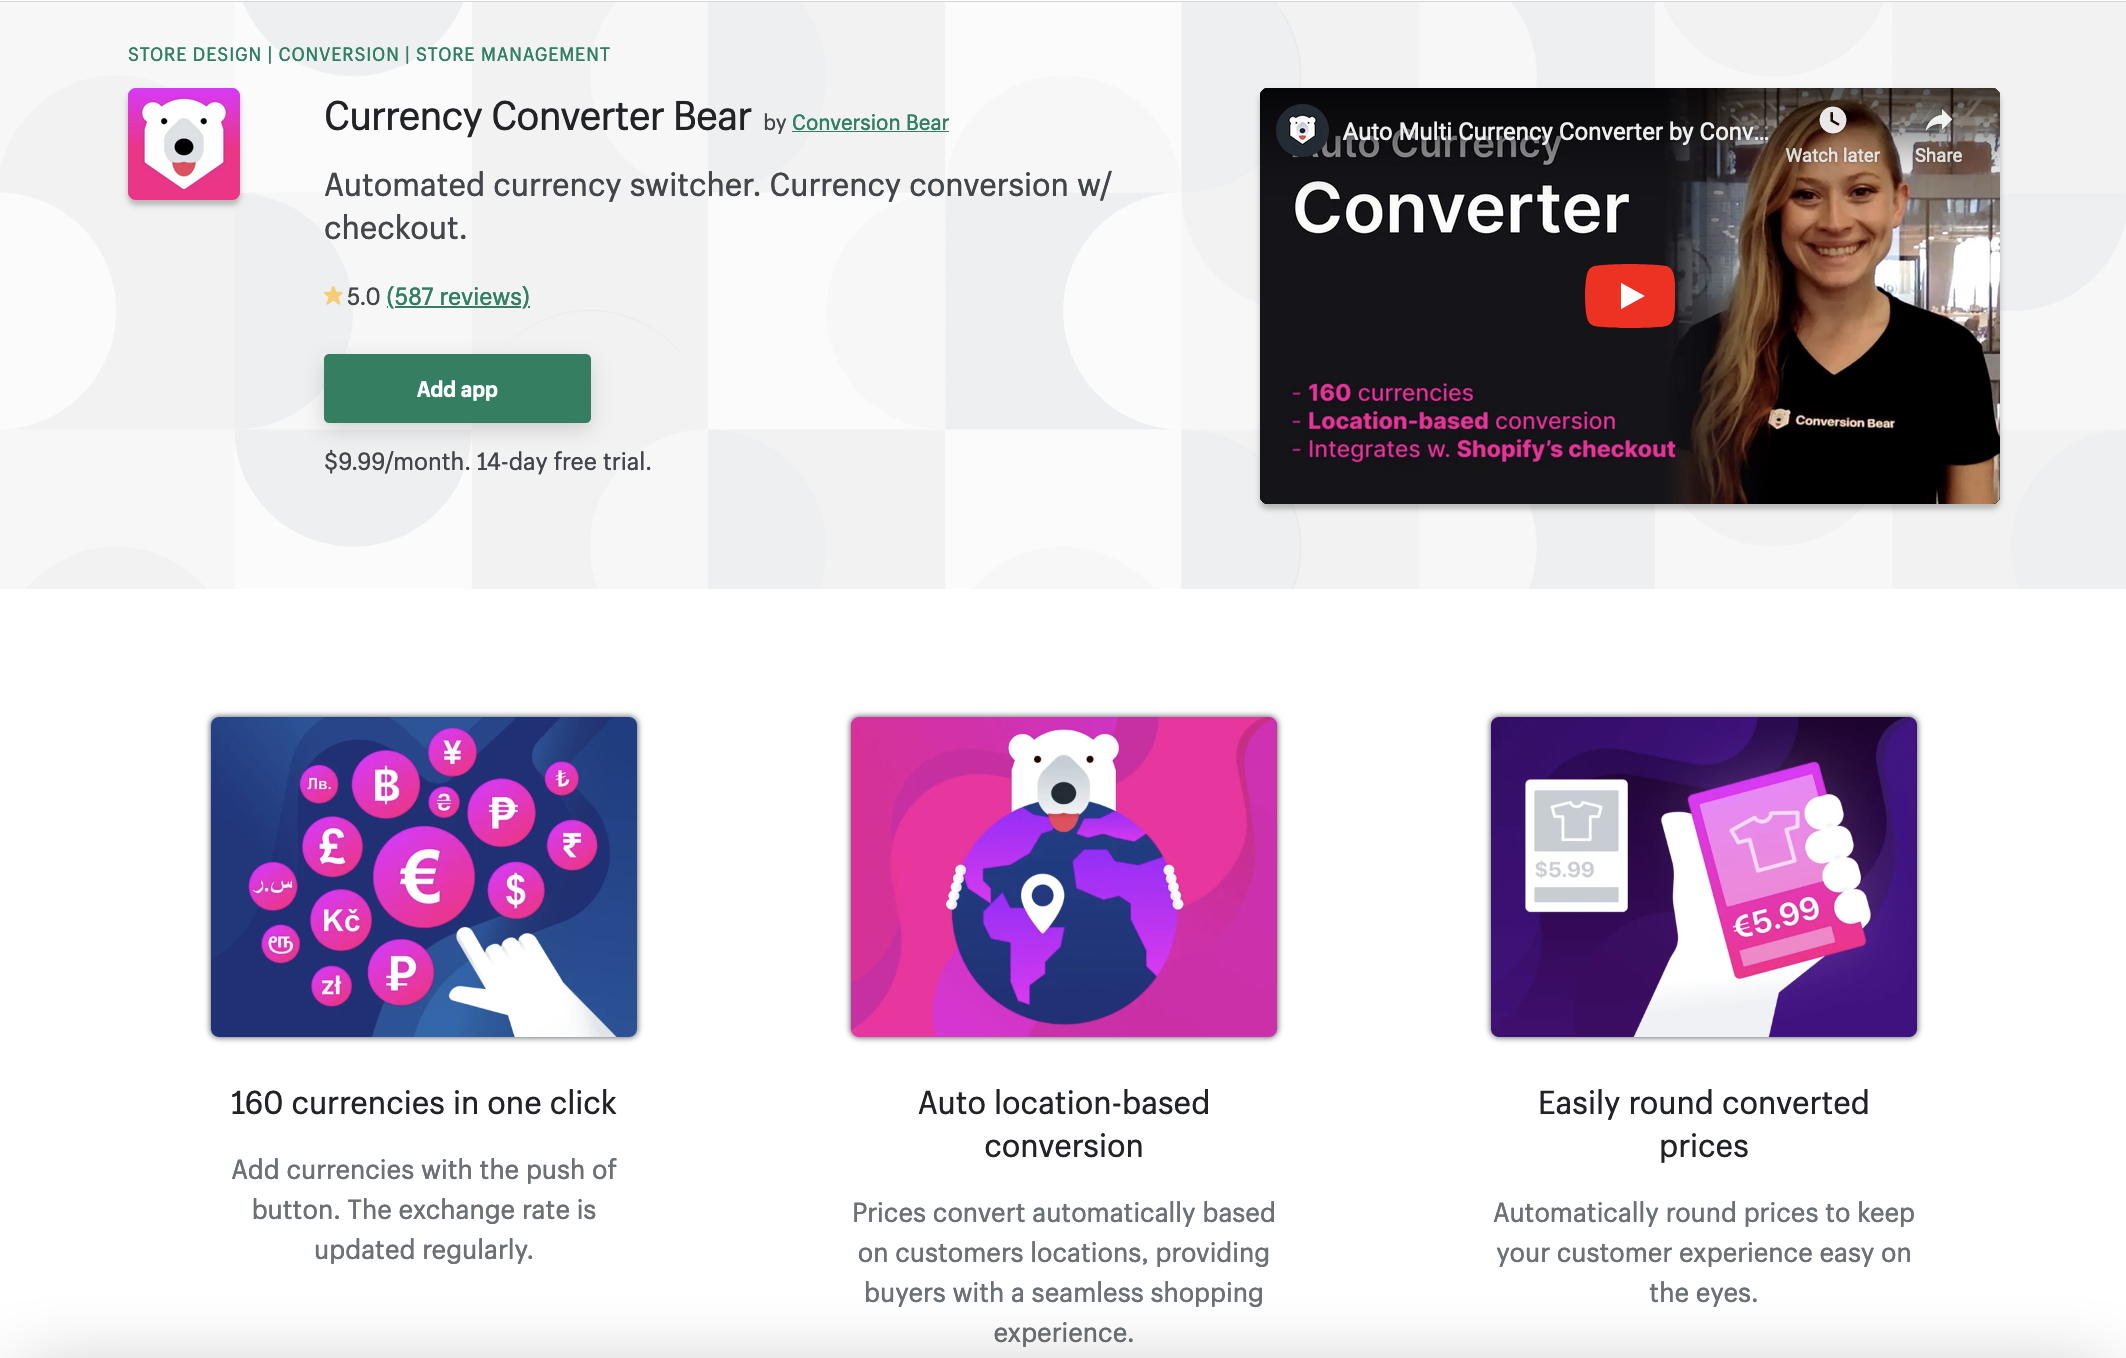 Currency Converter Bear by Conversion Bear